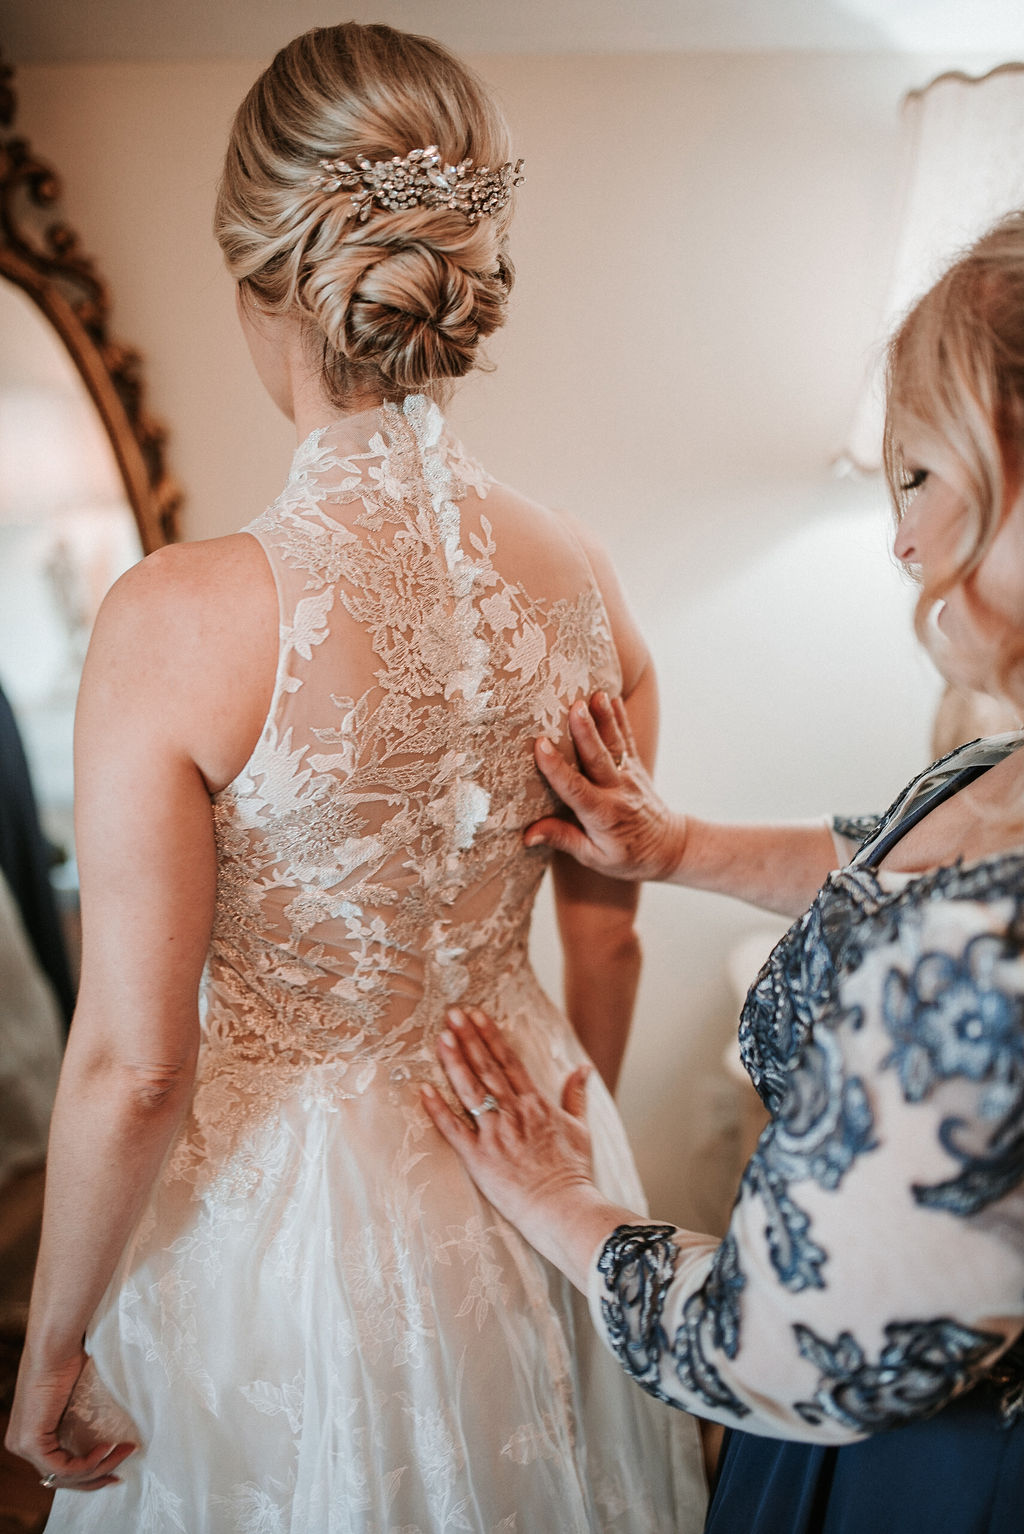 Mother of the Bride helping button Bride's wedding dress at Bluemont Vineyard